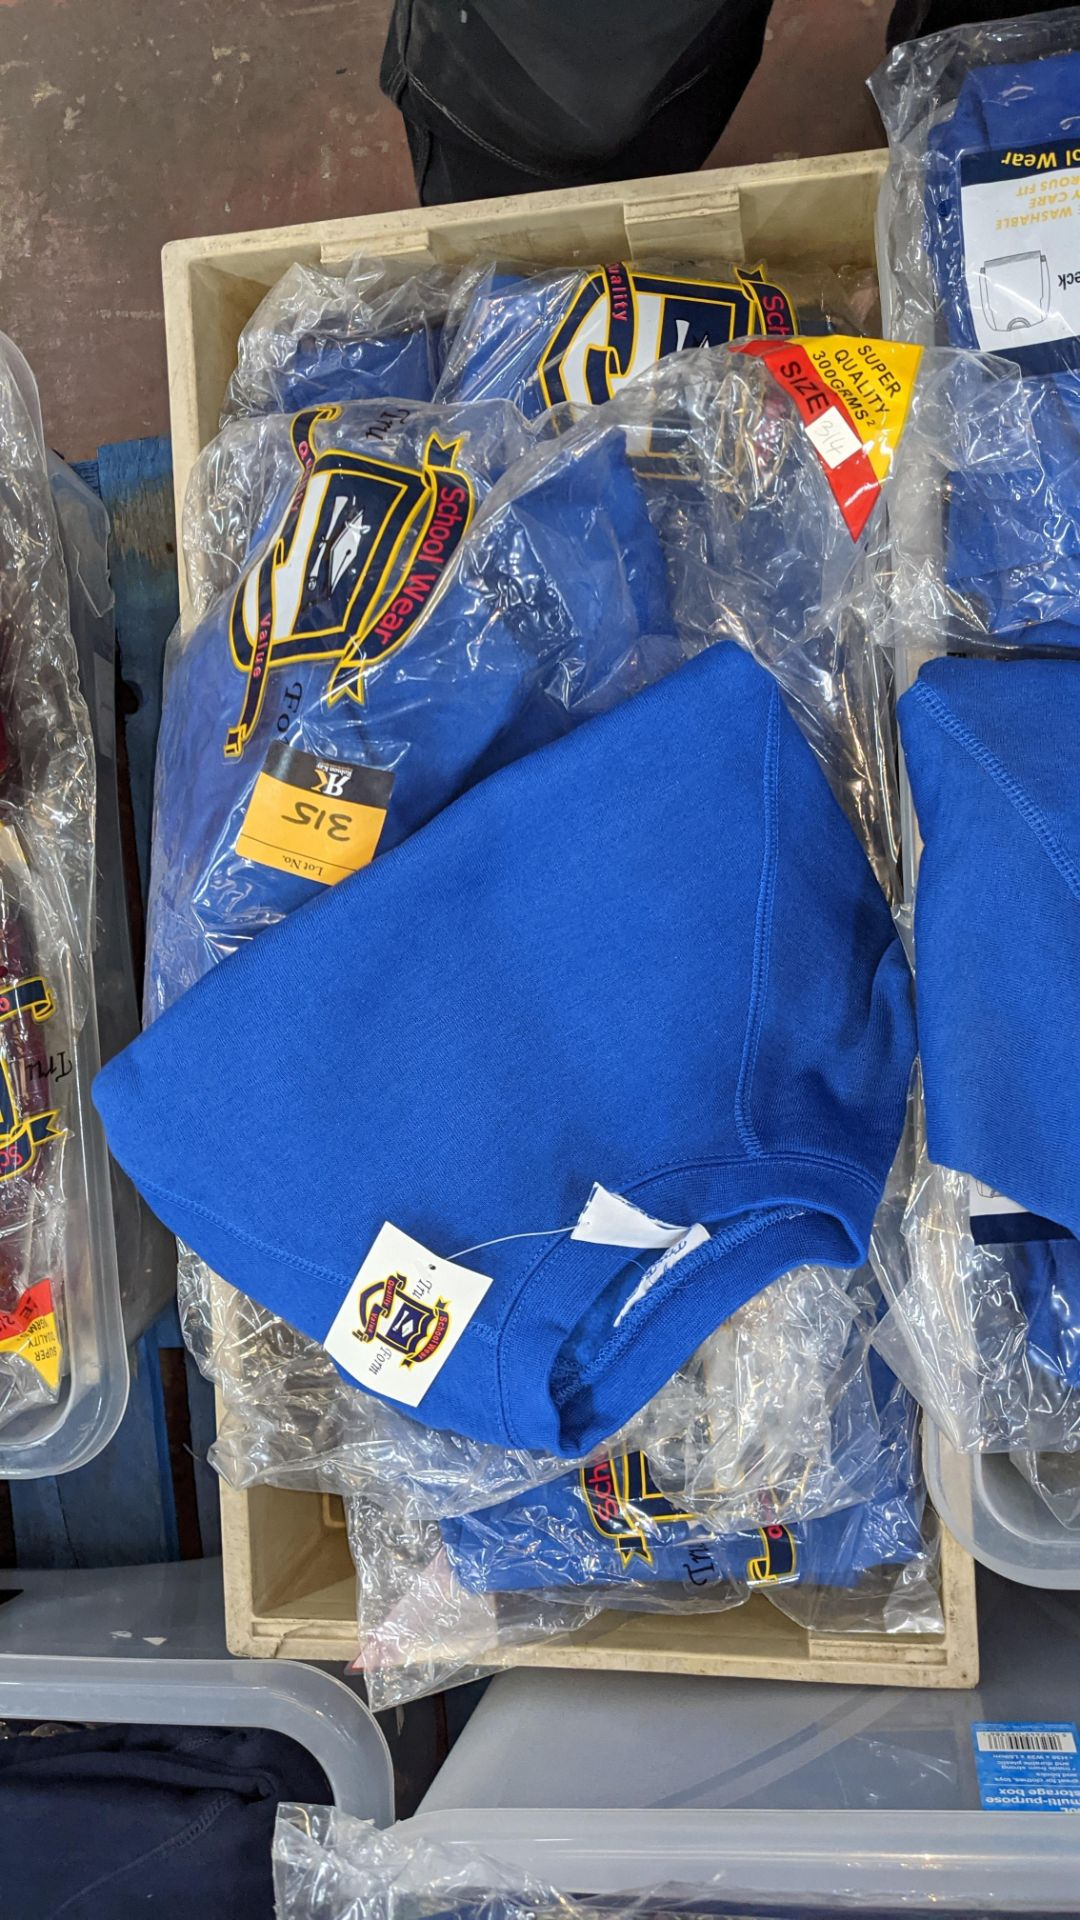 Approx 17 off blue children's sweatshirts & similar - the contents of 1 crate. NB crate excluded - Image 6 of 6